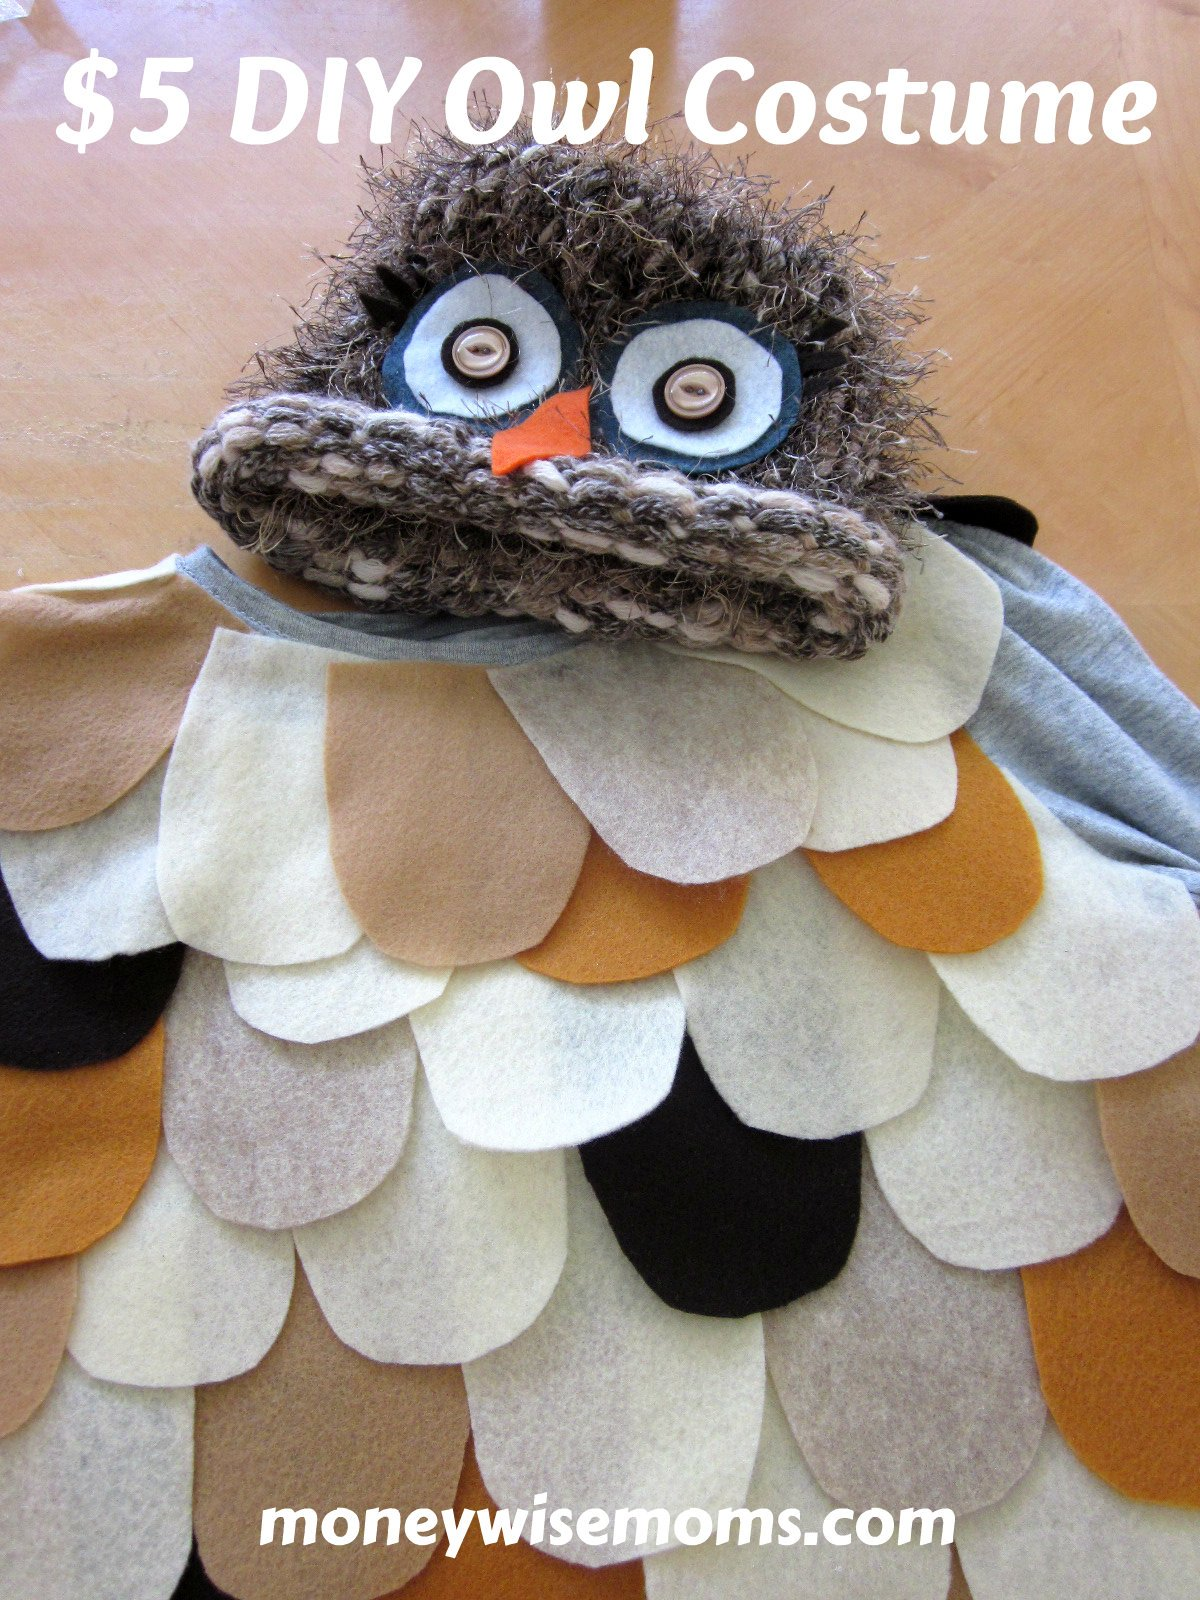 The Most Adorable $5 DIY Owl Costume